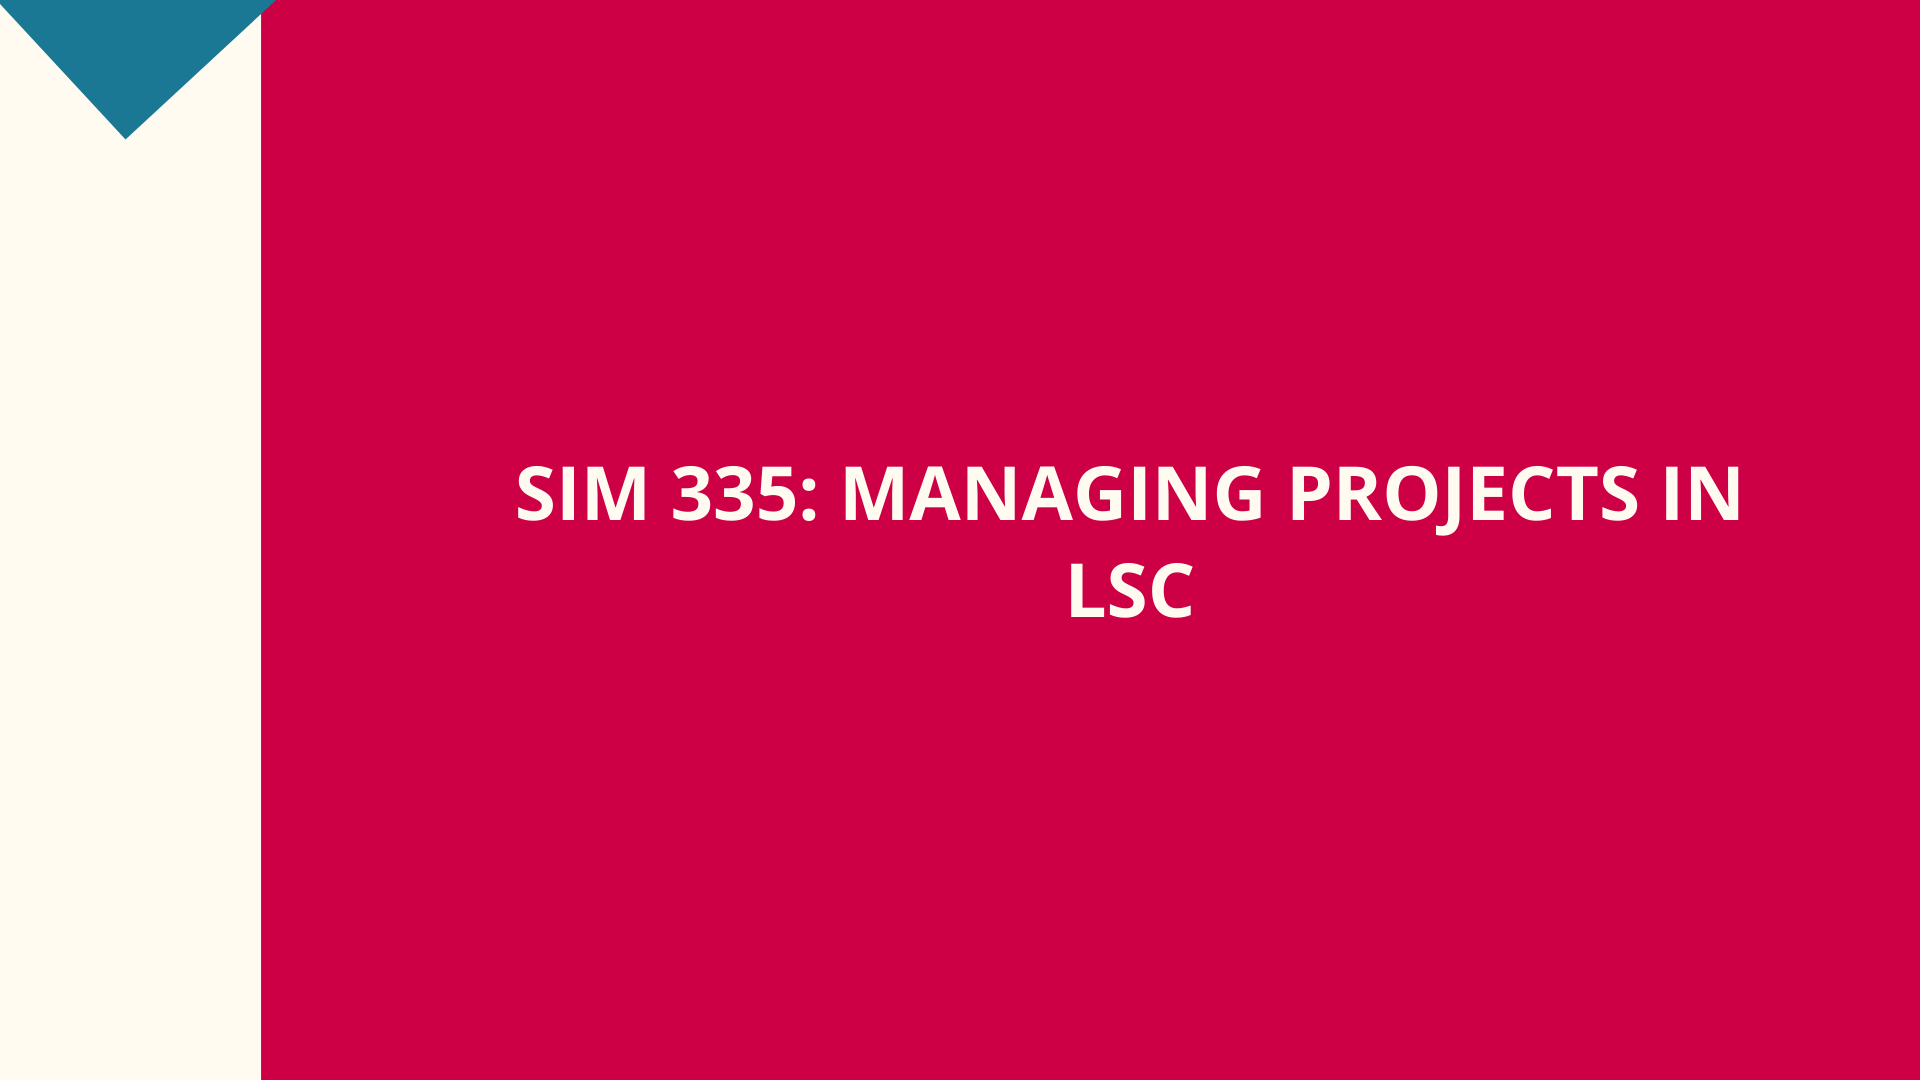 SIM 335: Managing Projects in LSC